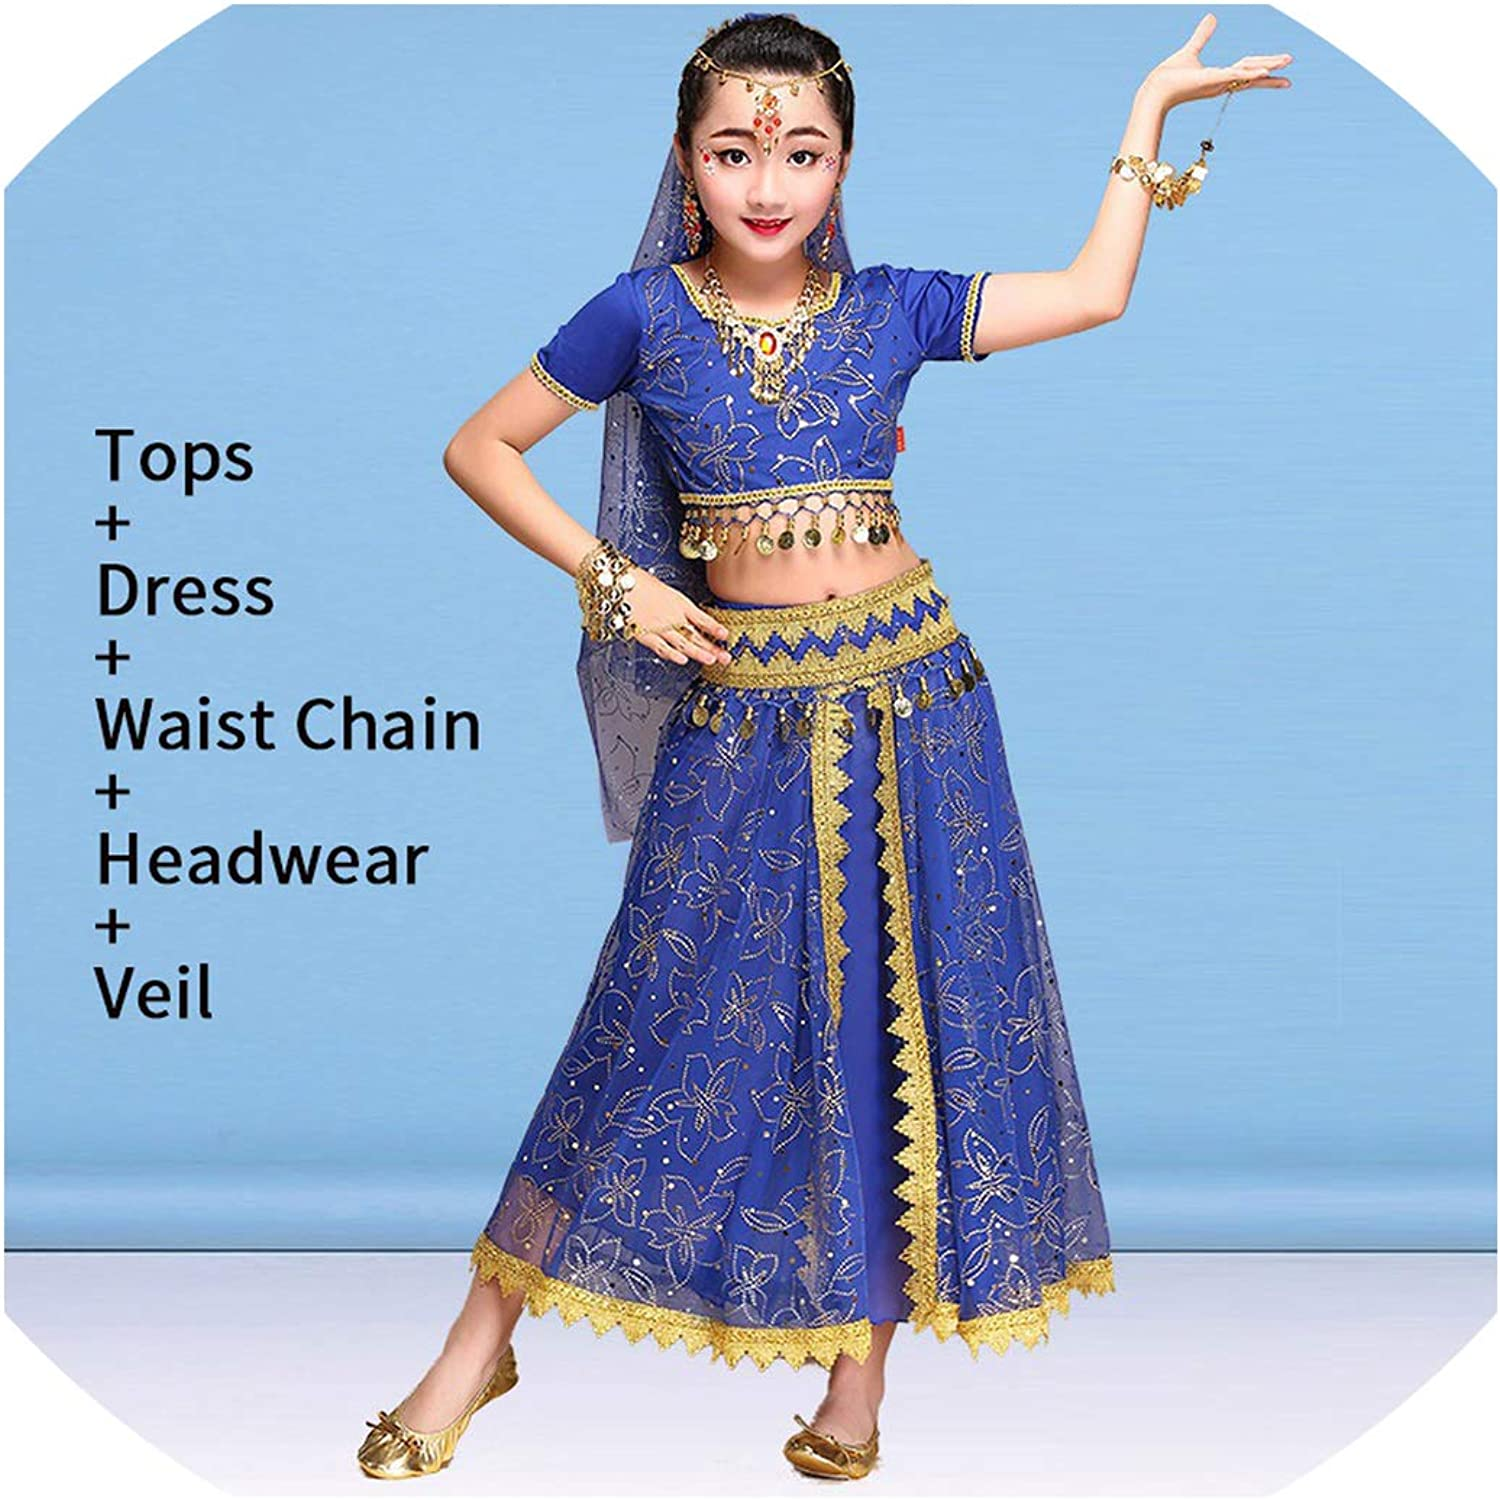 Girls Kid Indian Belly Dance Costume Outfit Top Skirts Set Children Dancing Wear